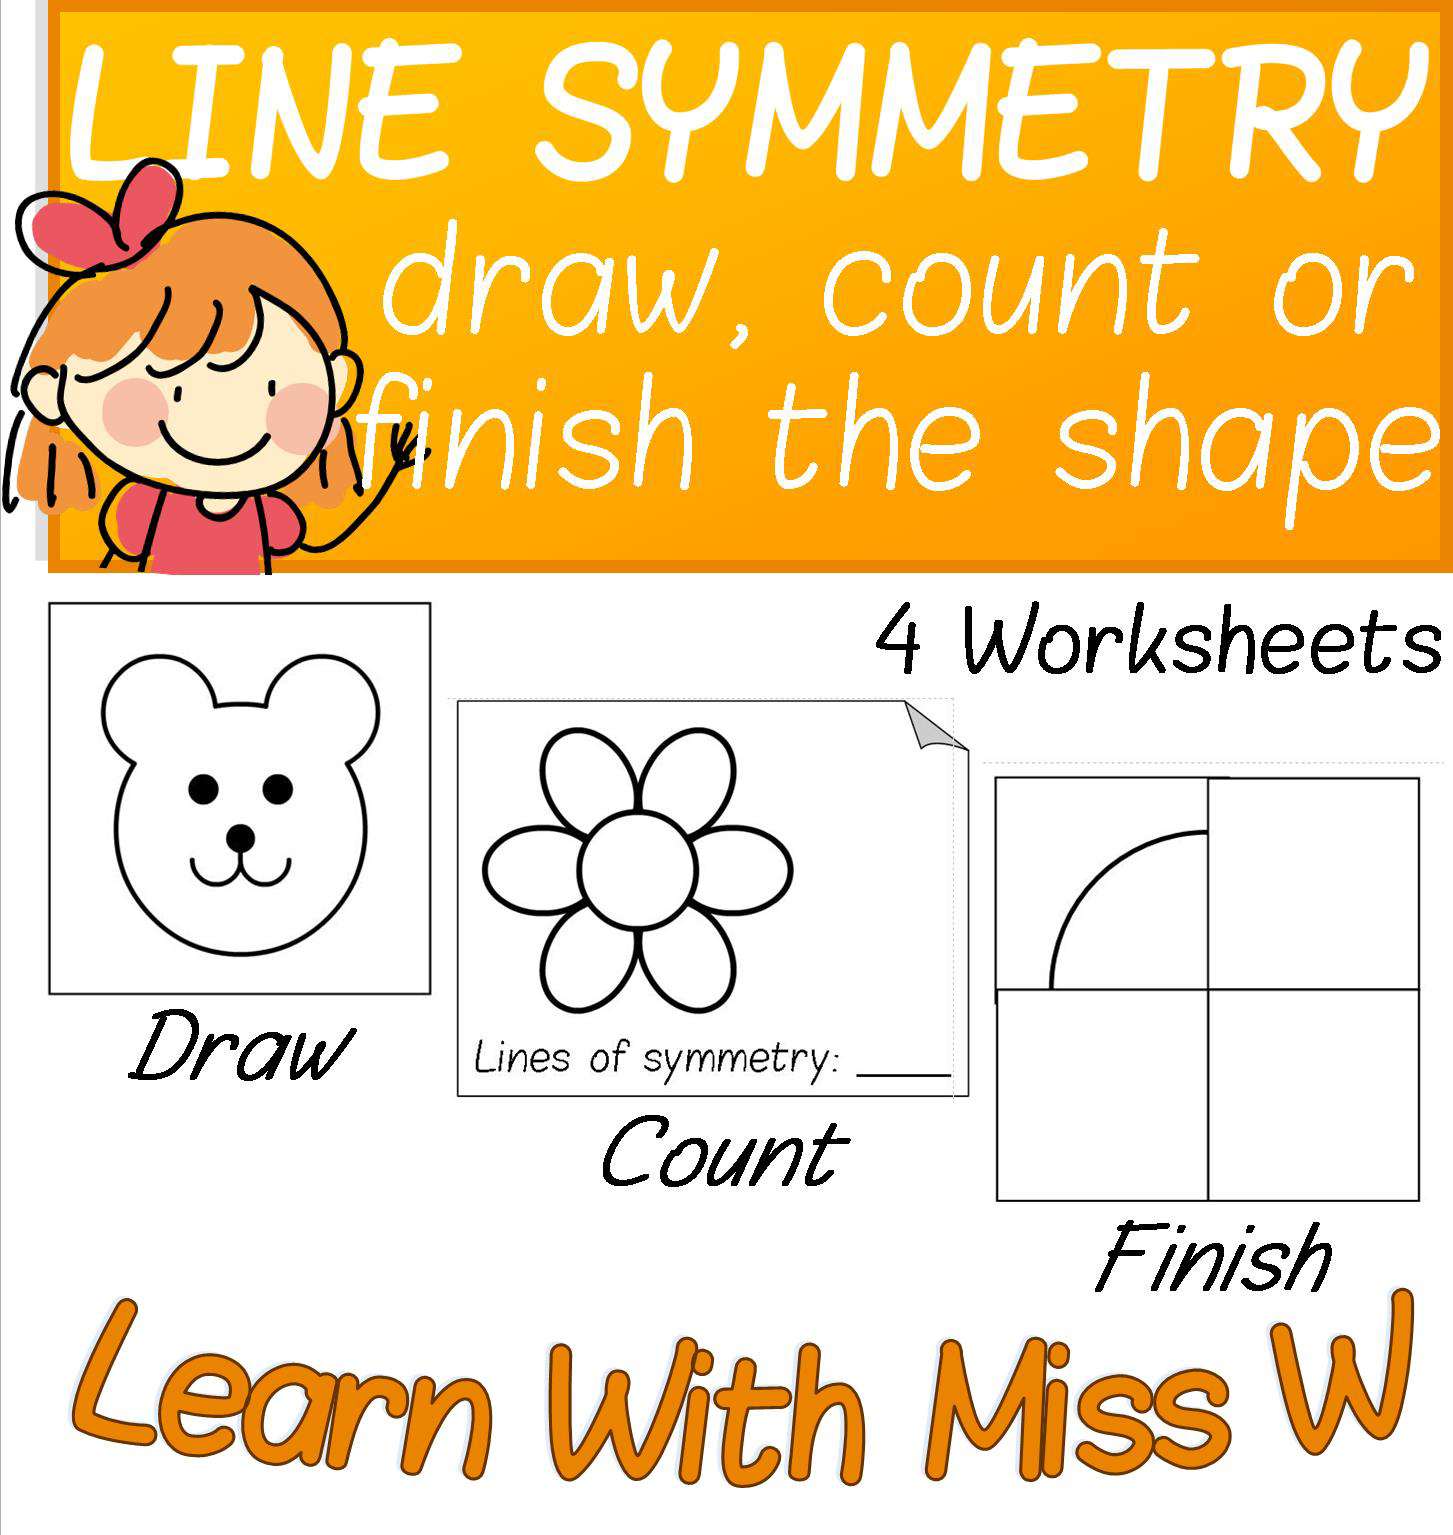 4 differentiated worksheets about lines of symmetry. Tasks include ...